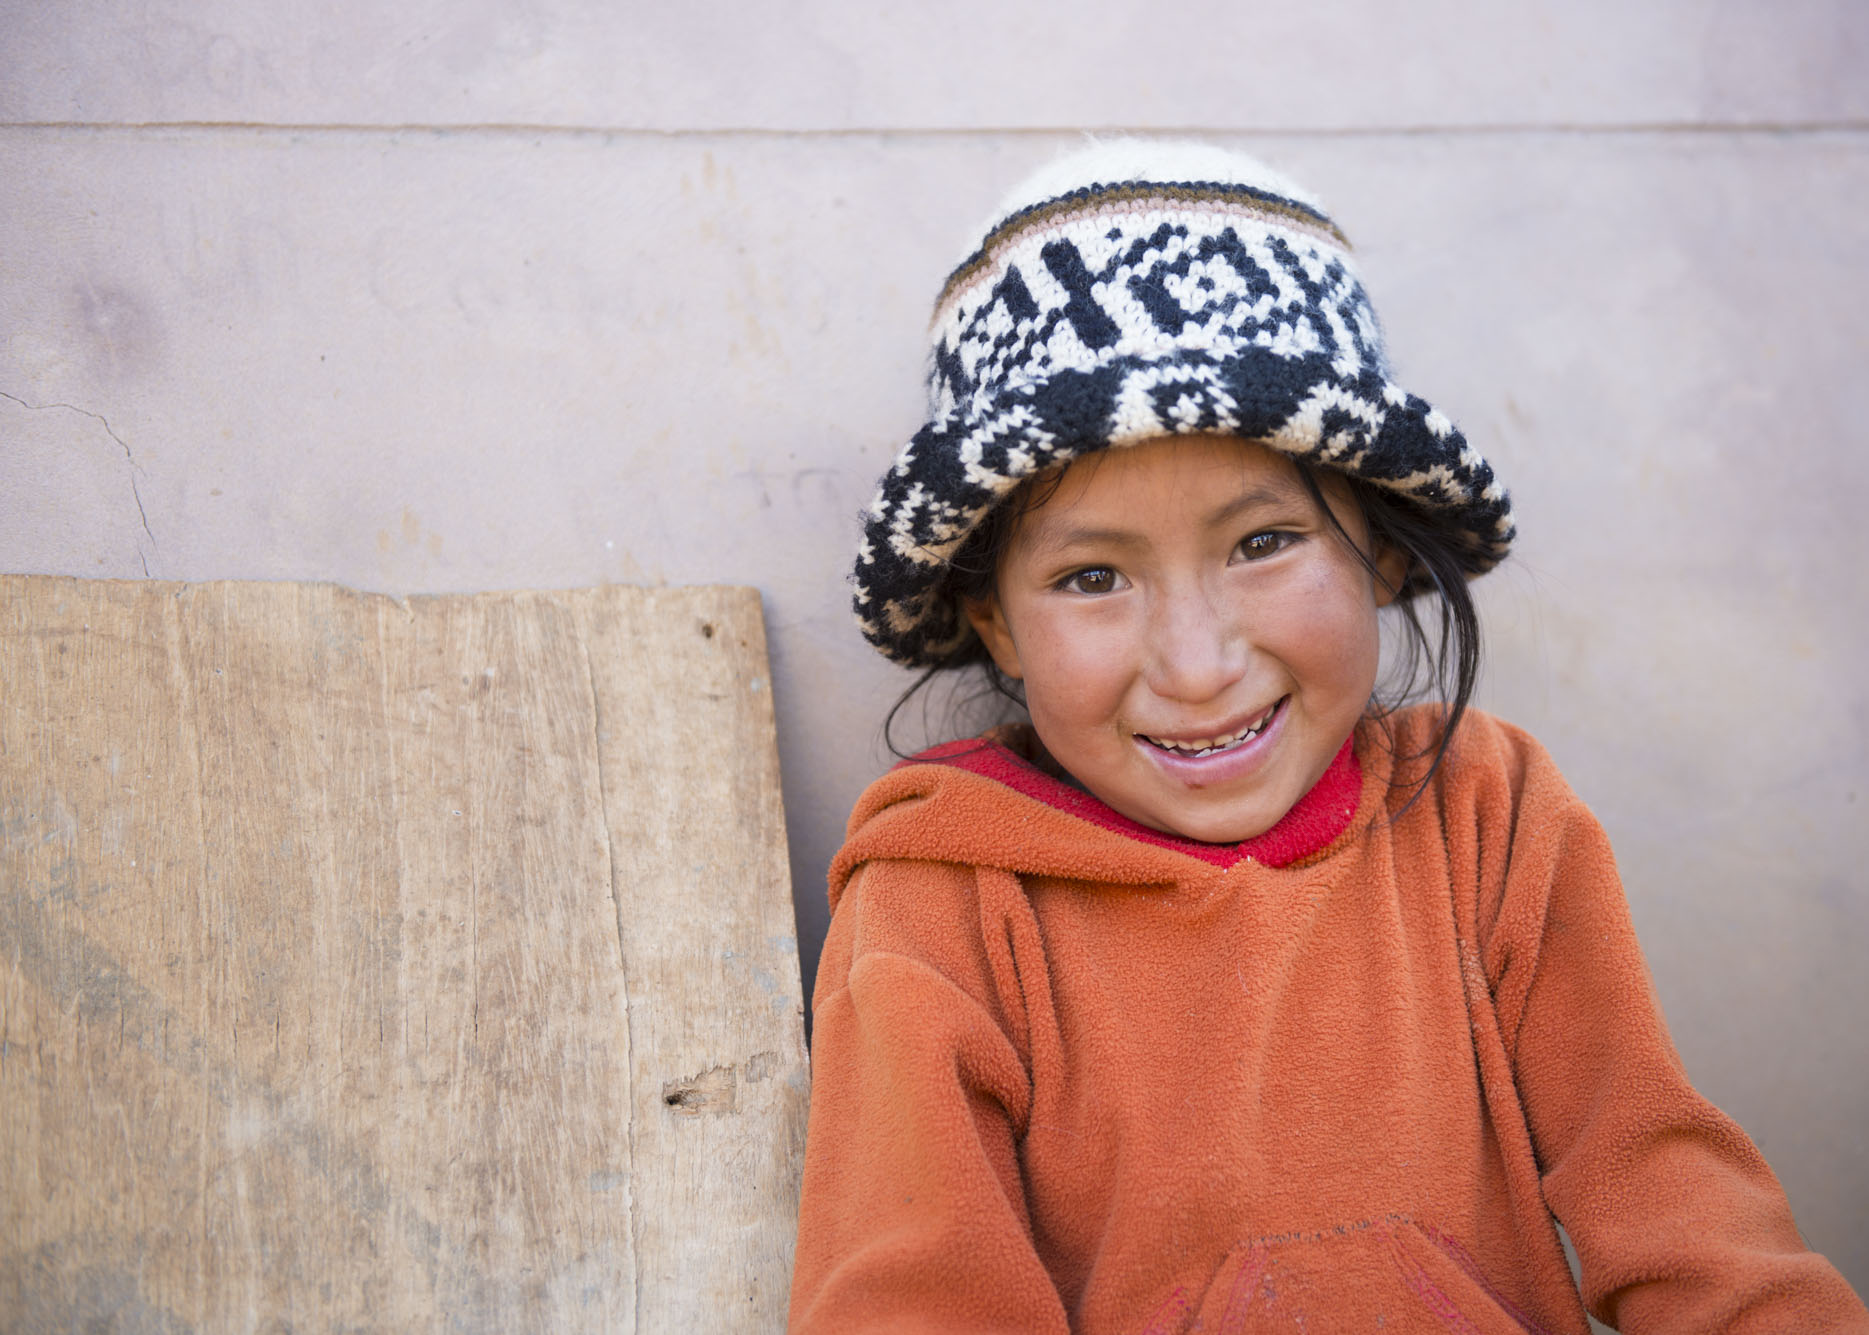 Quechua girl smiles at the camera